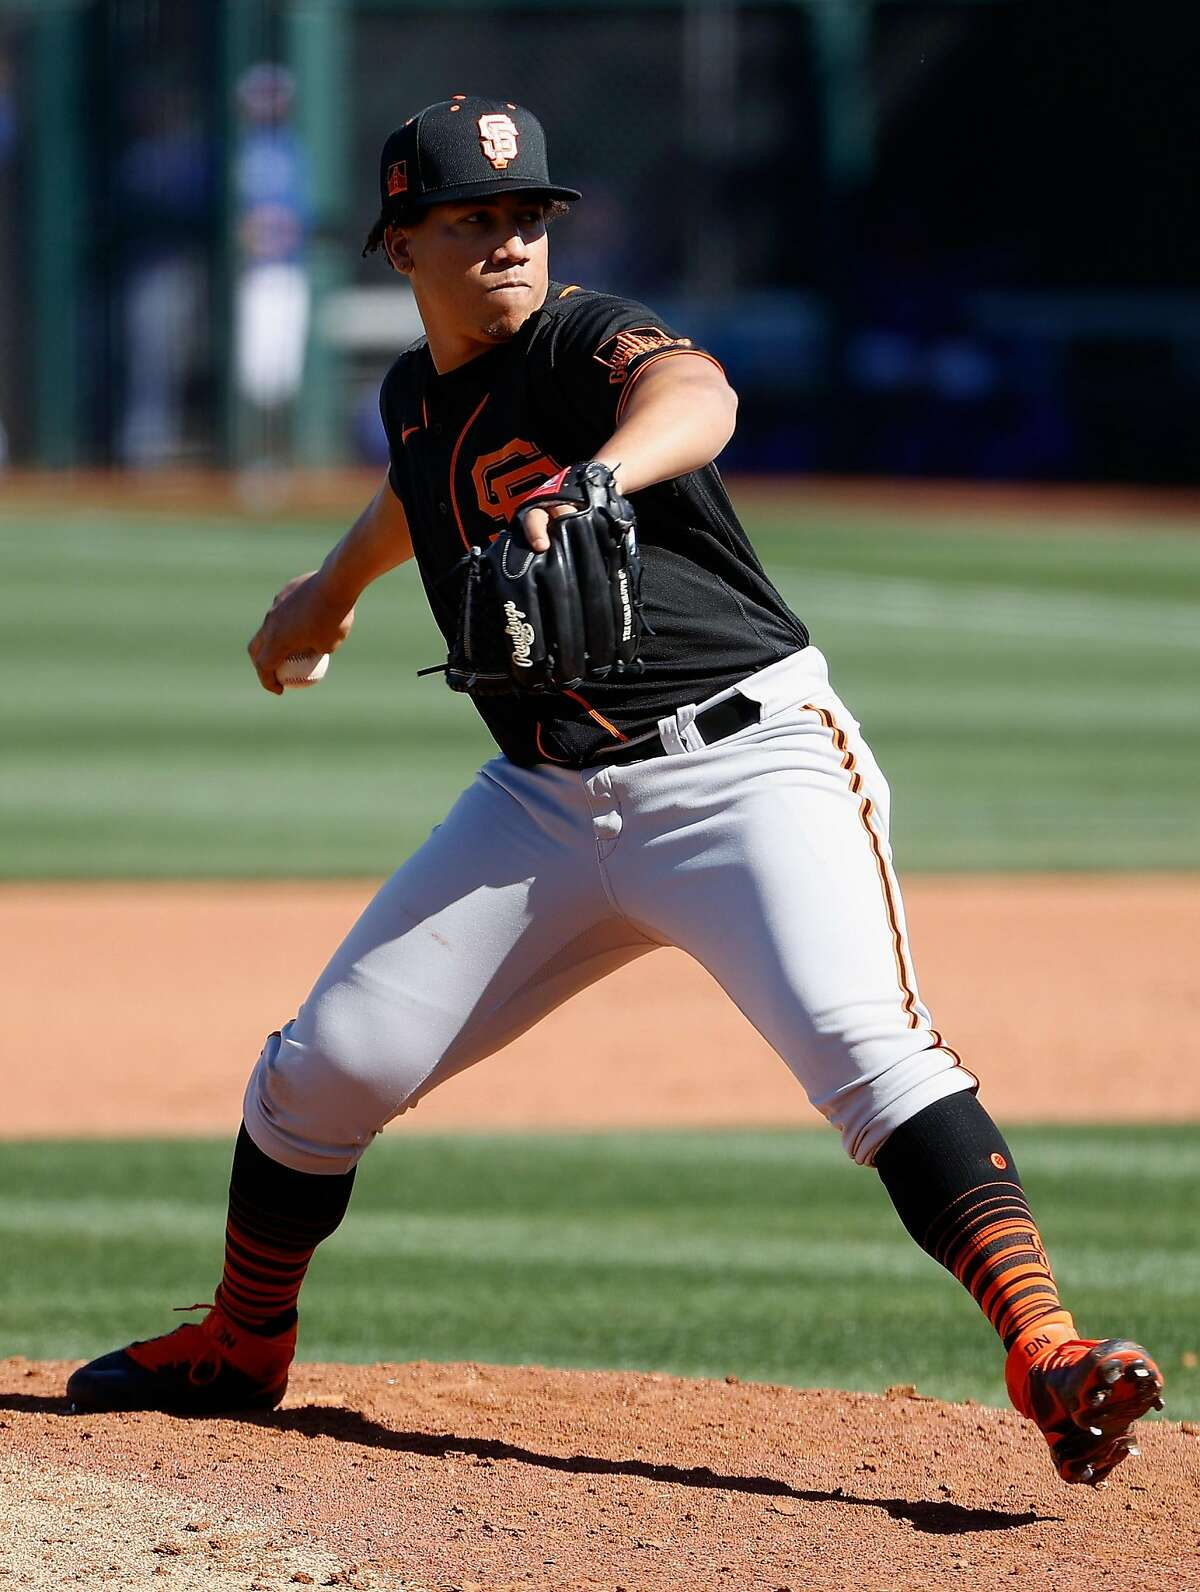 Giants' reliever Dedniel Nunez has been diagnosed with an ulnar collateral ligament sprain and will have a second opinion on his right elbow.